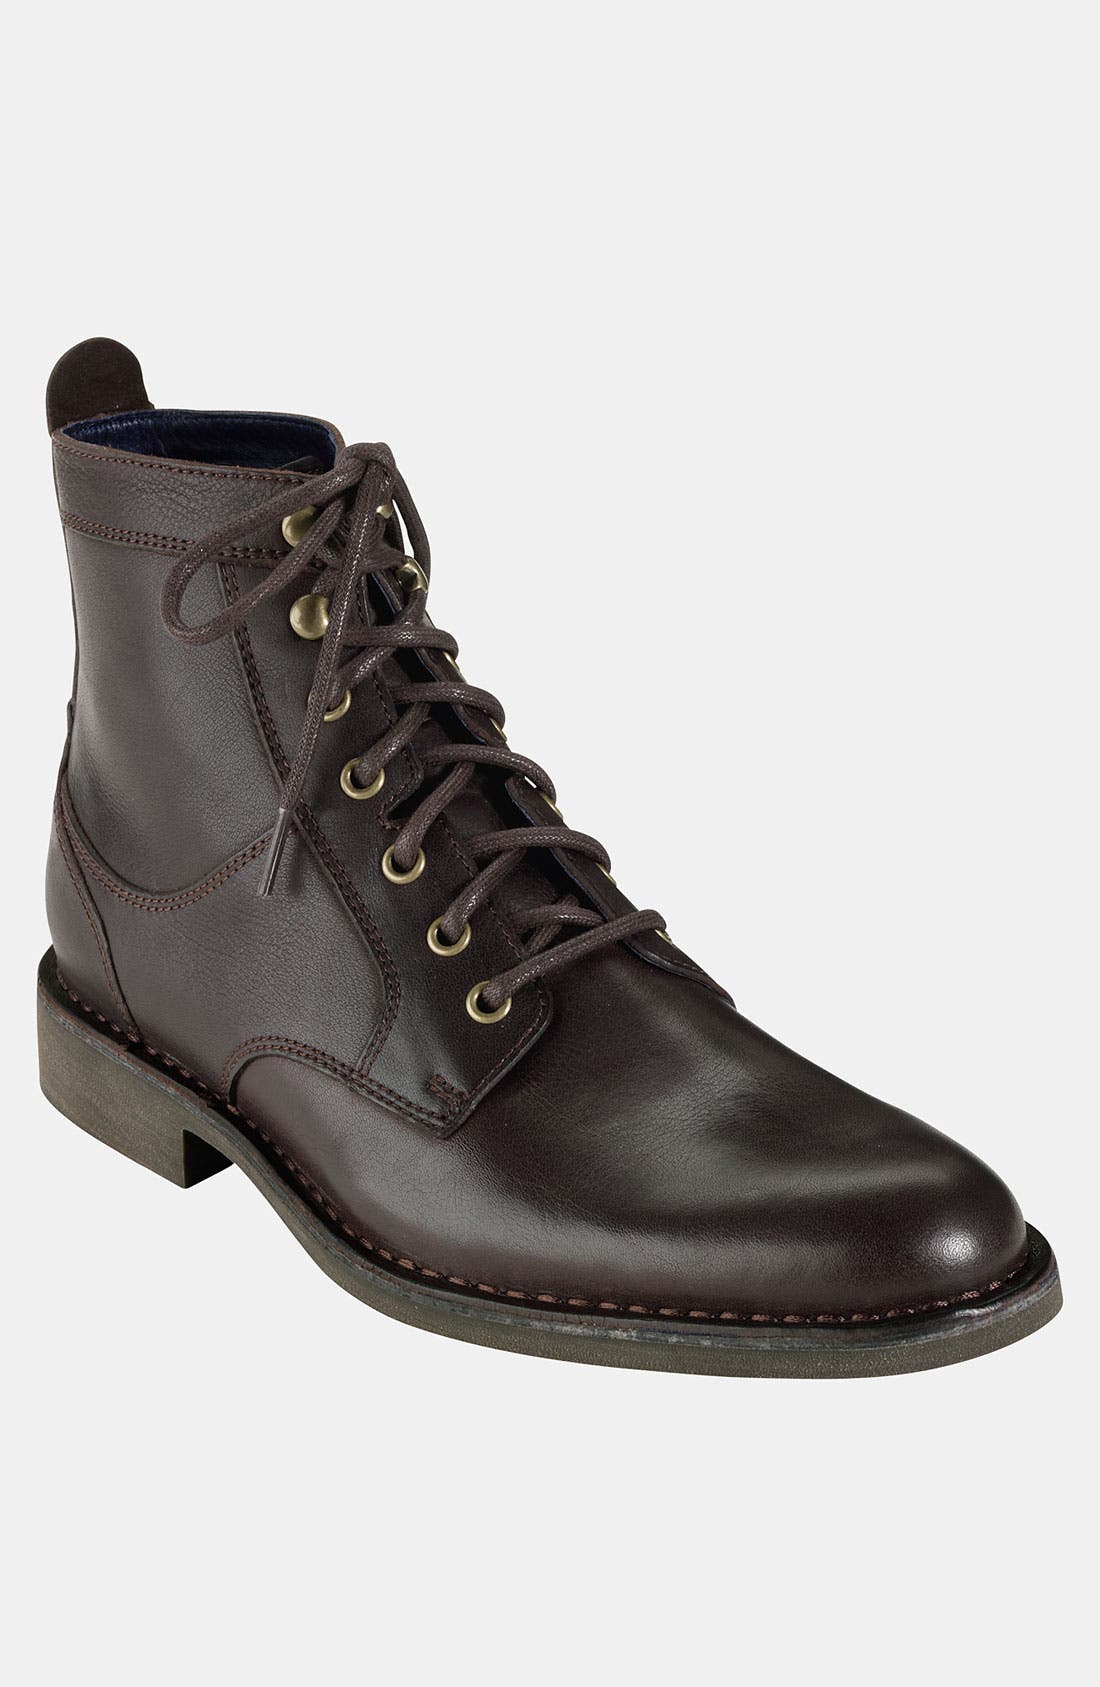 Main Image - Cole Haan 'Air Blythe' Plain Toe Boot